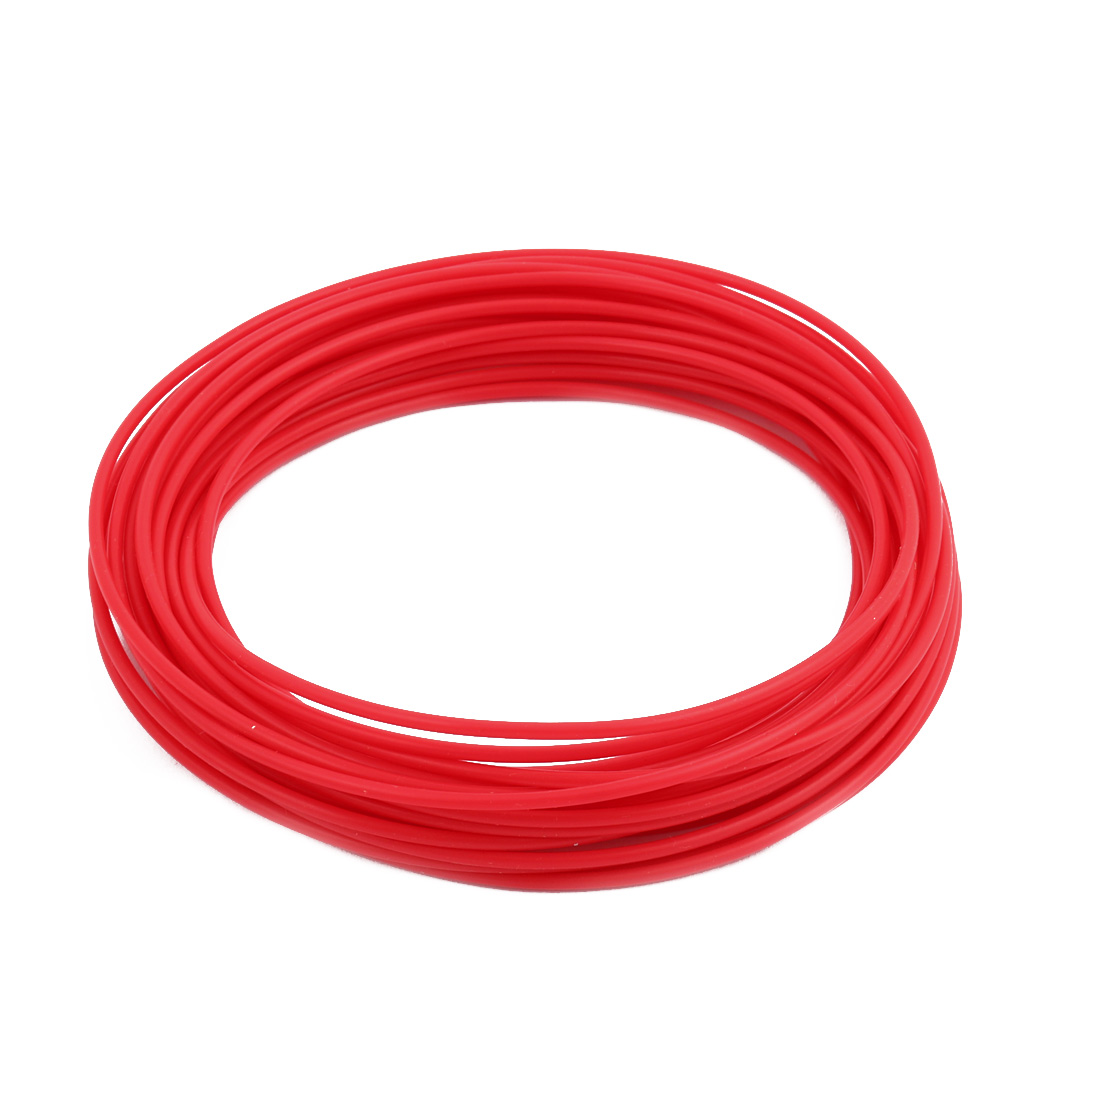 1.93mmx2.33mm PTFE Resistant High Temperature Red Tubing 10 Meters 32.8Ft